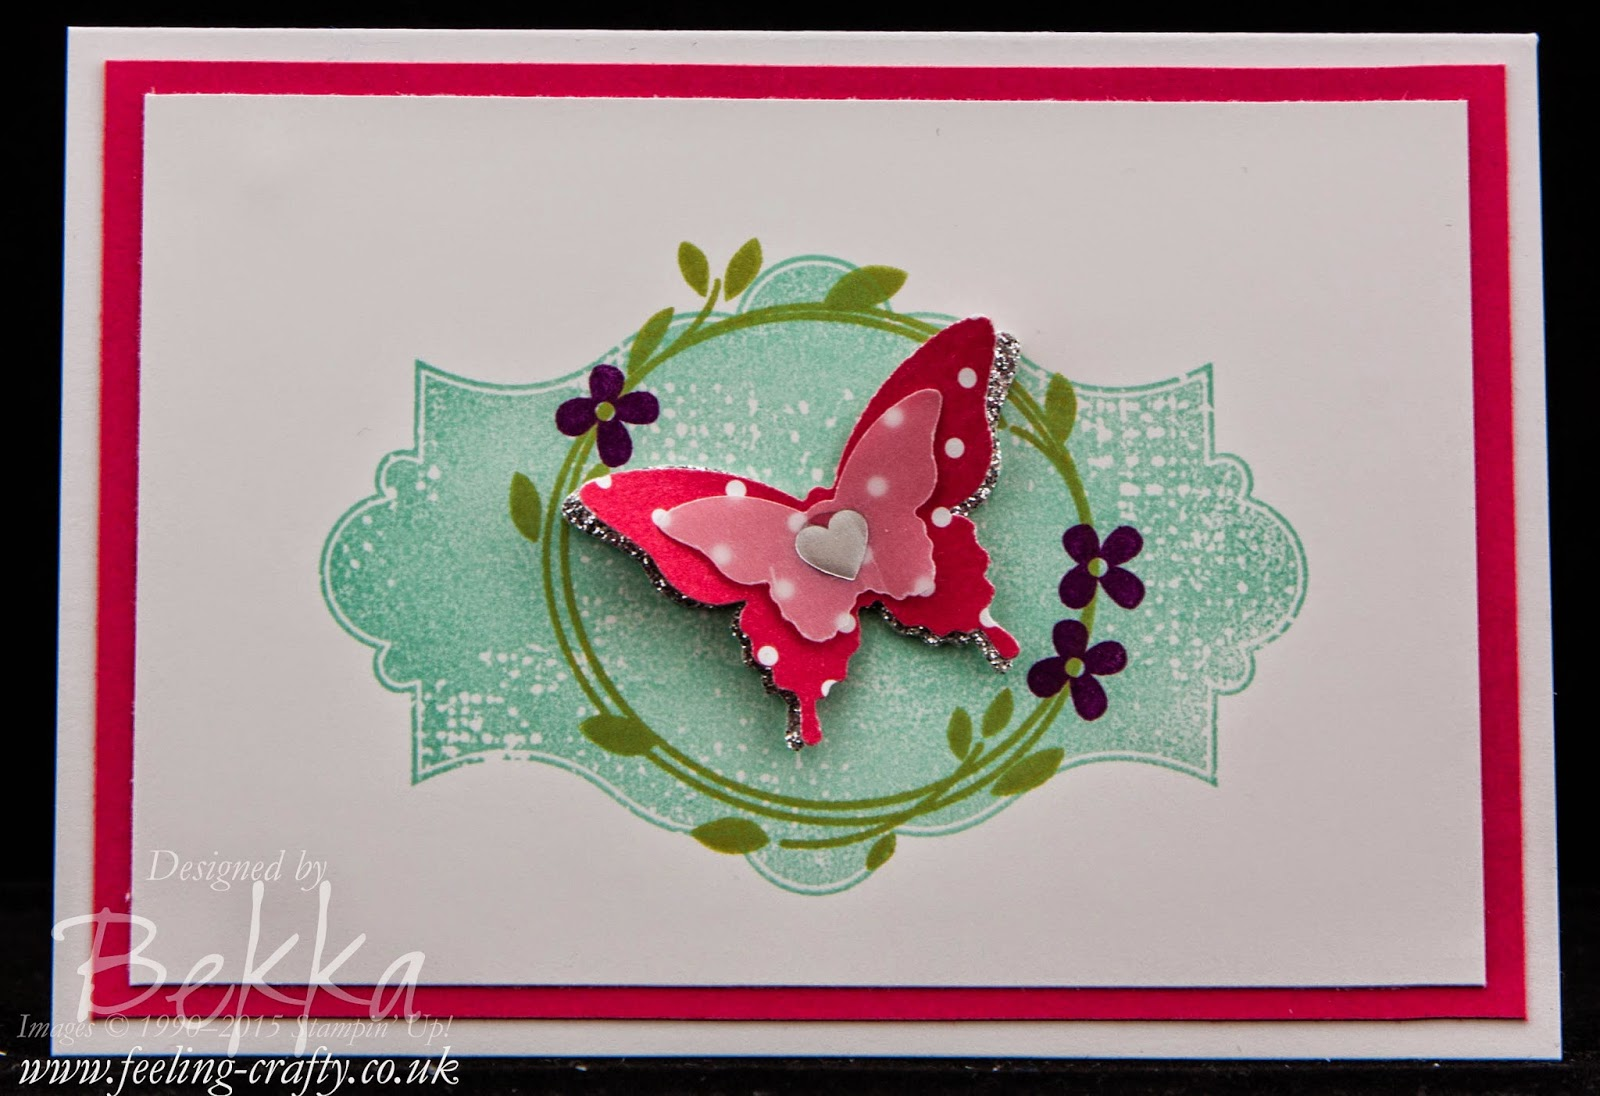 Beautiful Butterfly Card For Any Occasion Using Stampin' Up! UK Products - get them here